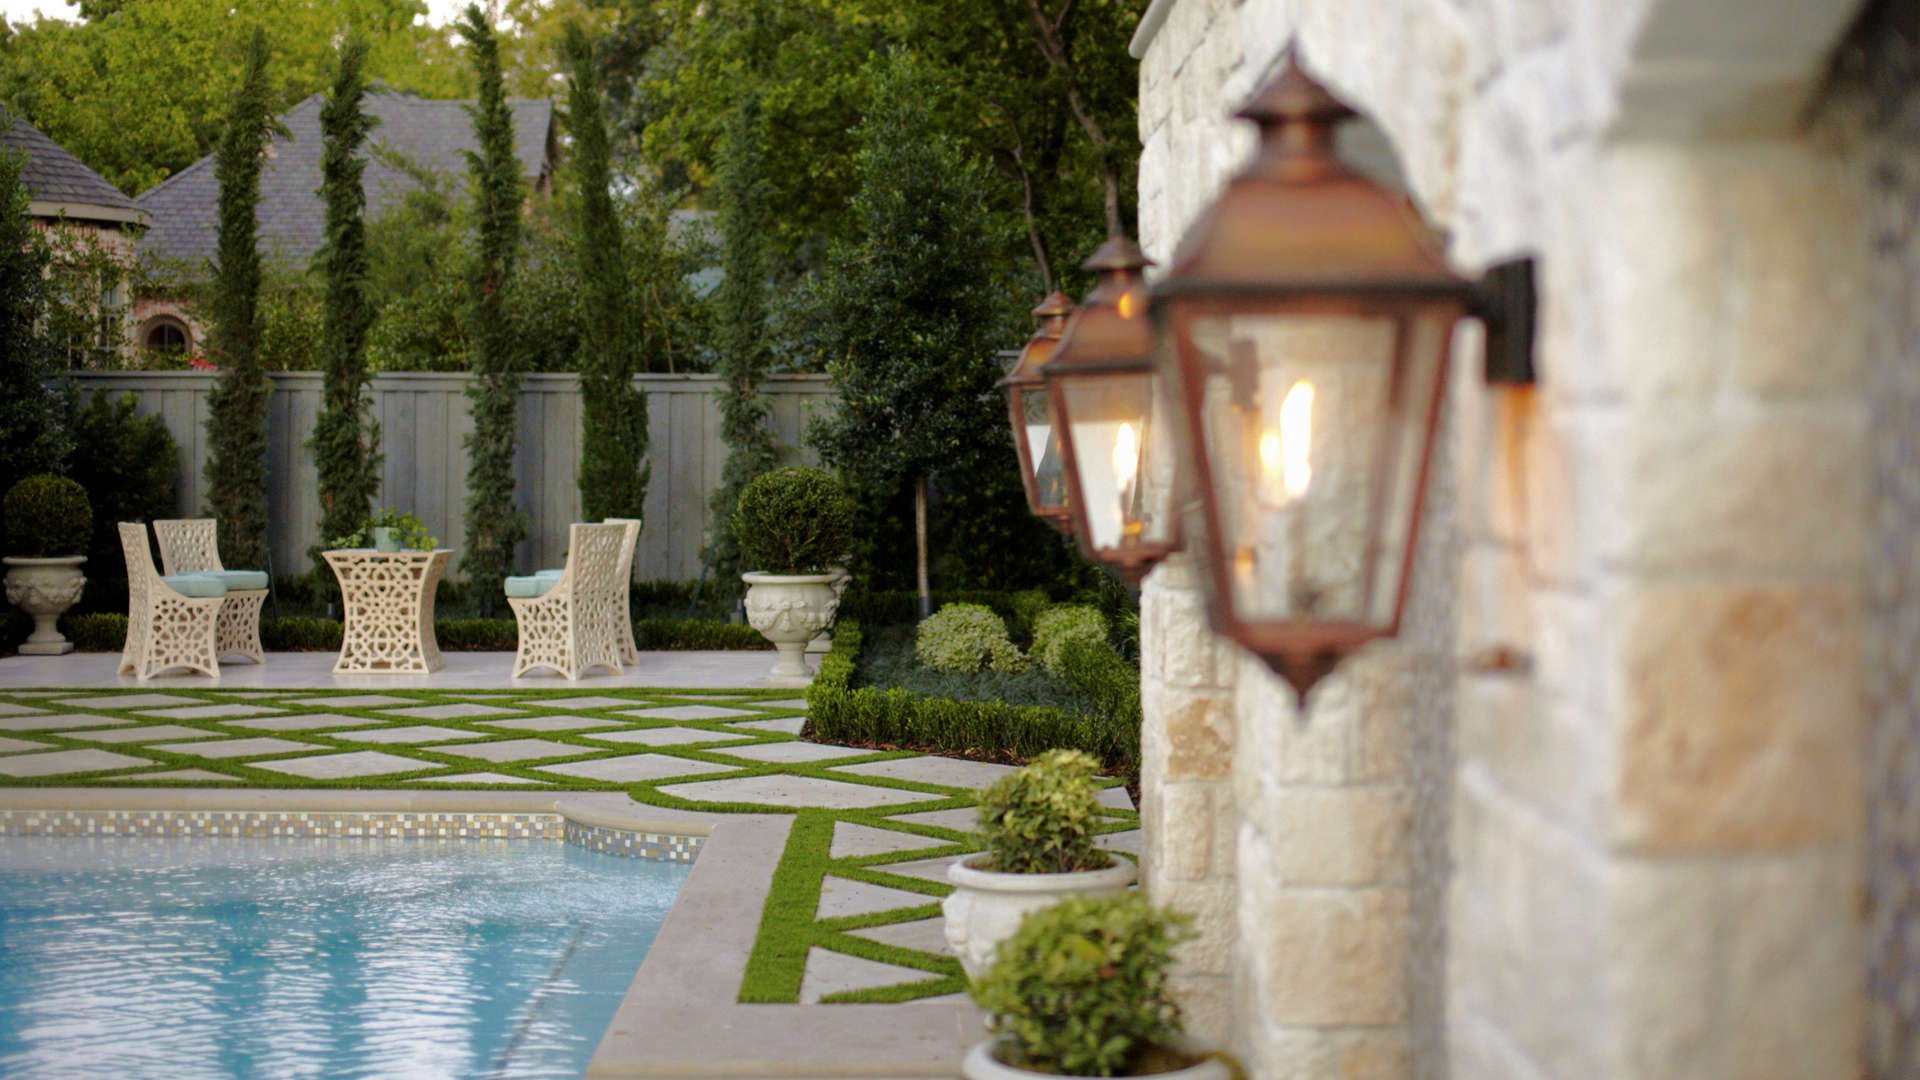 Garden Design Dallas amazing of landscaping large front yard large front garden design ideas Dallas Landscape Design Firm Matthew Murrey Design